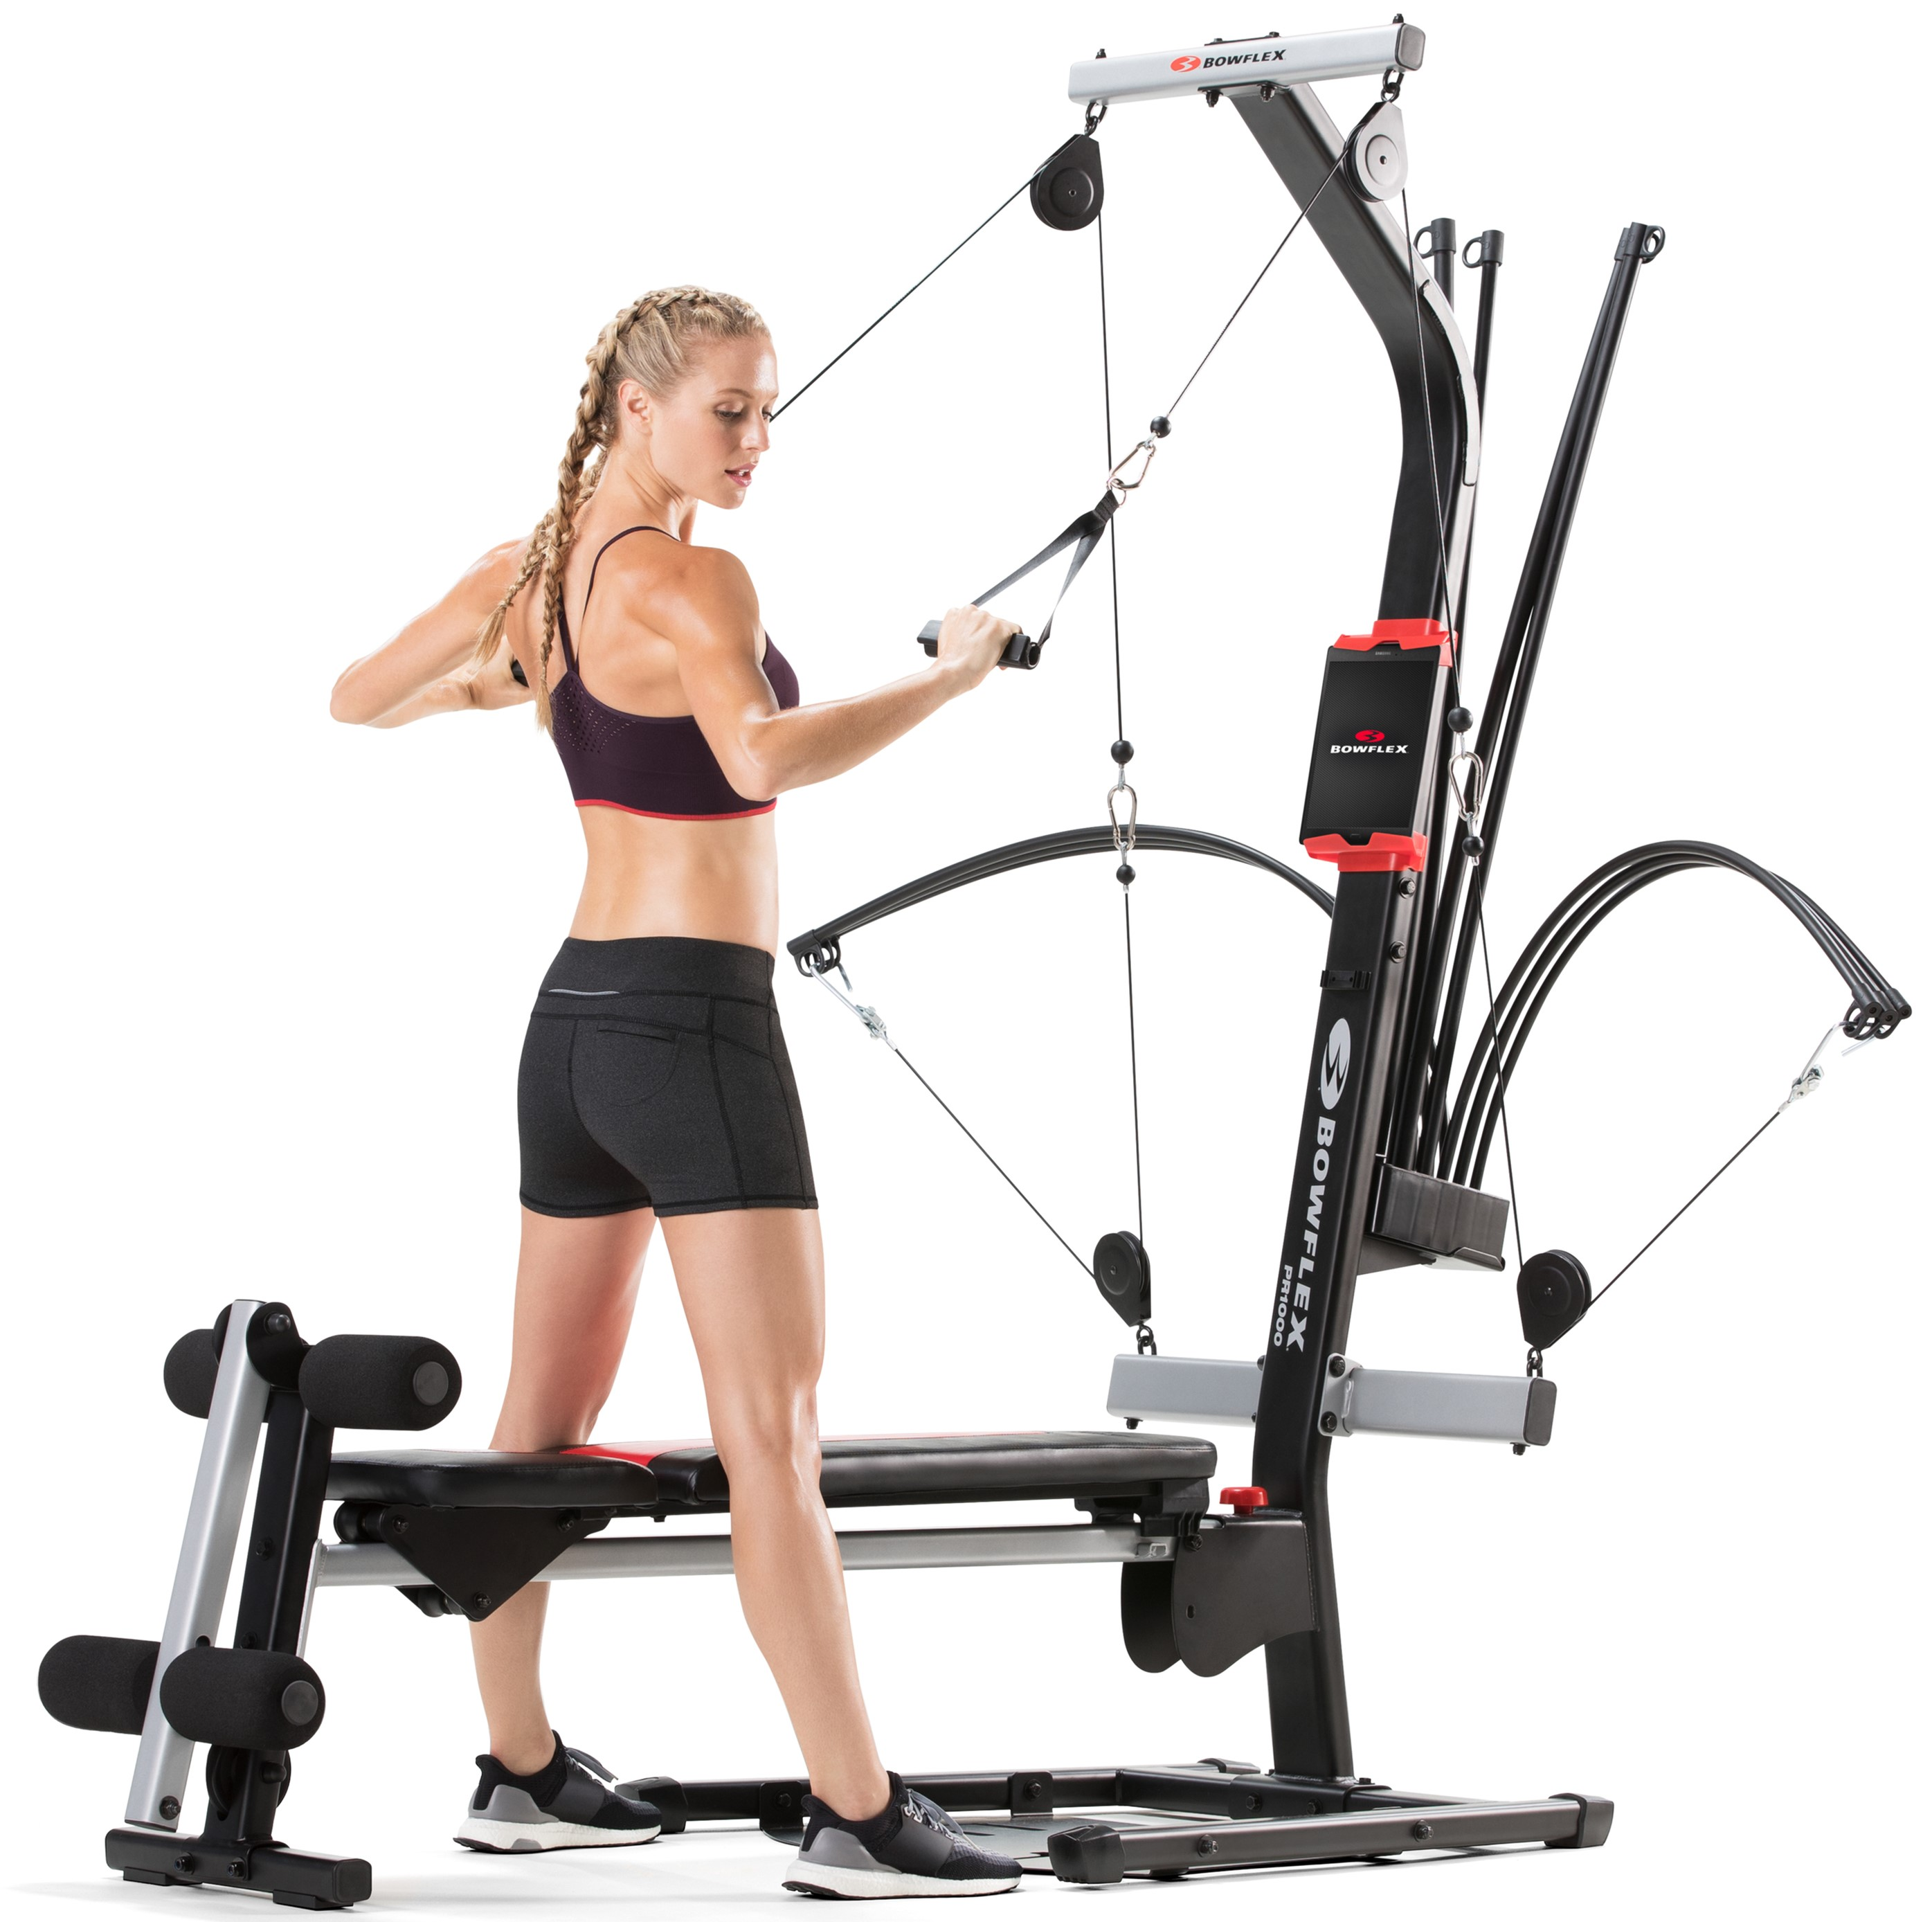 Bowflex PR1000 Home Gym with 25+ Exercises and 200 lbs. Power Rod...